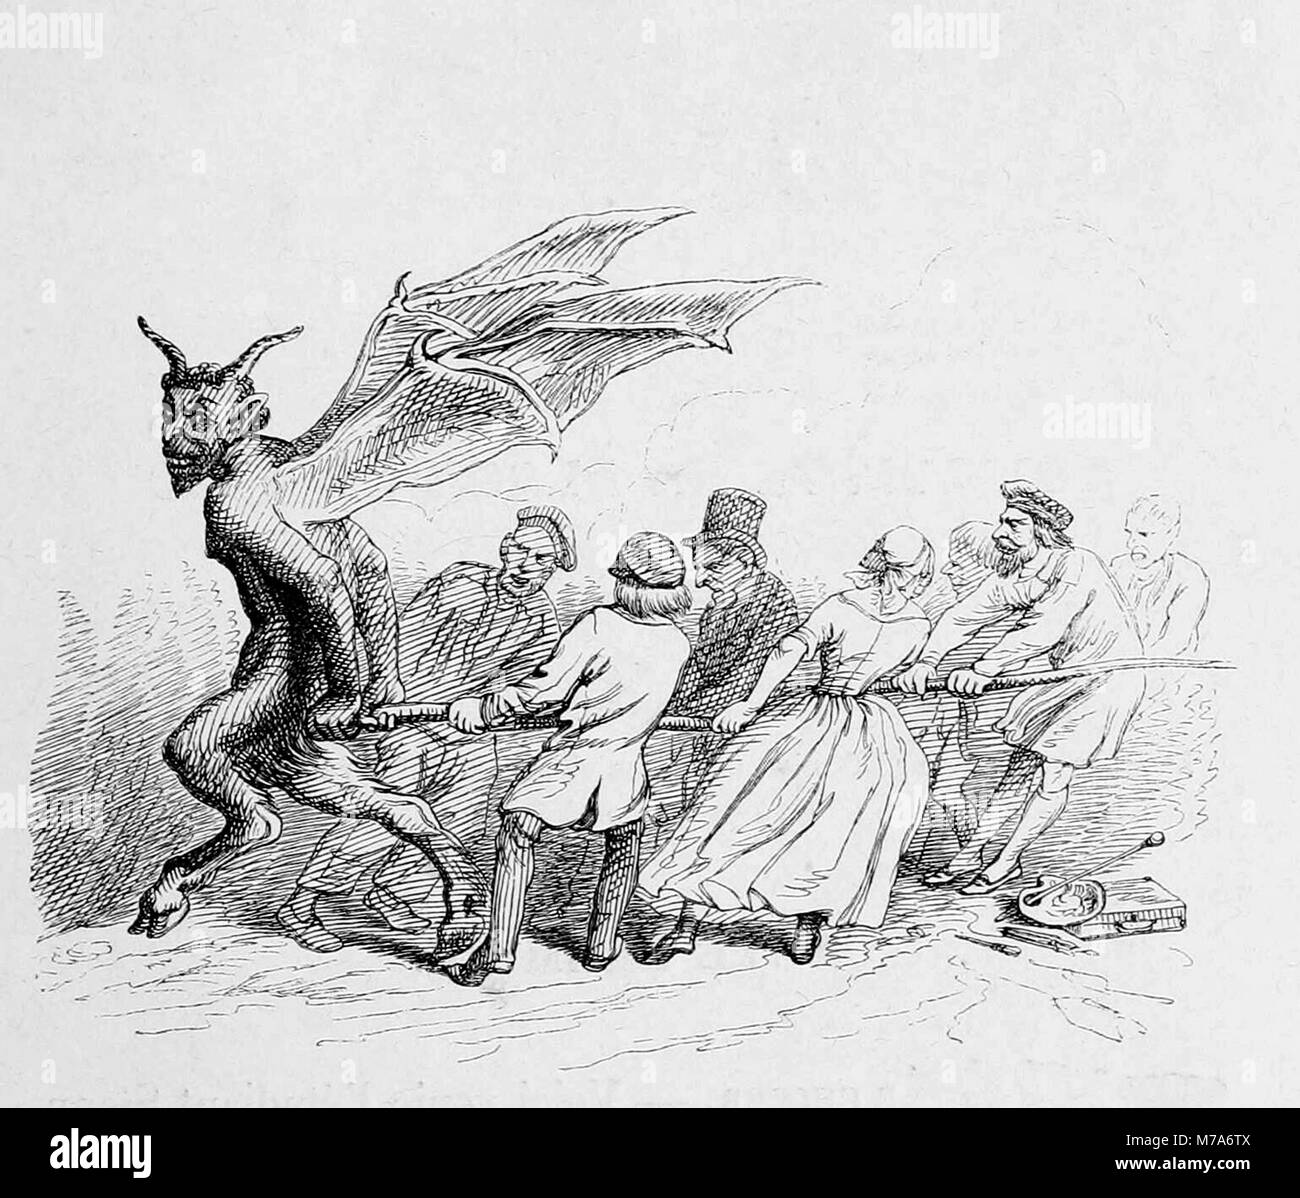 Pulling the Devil by the Tail, a 19th century woodcut by J J Grandville - Stock Image